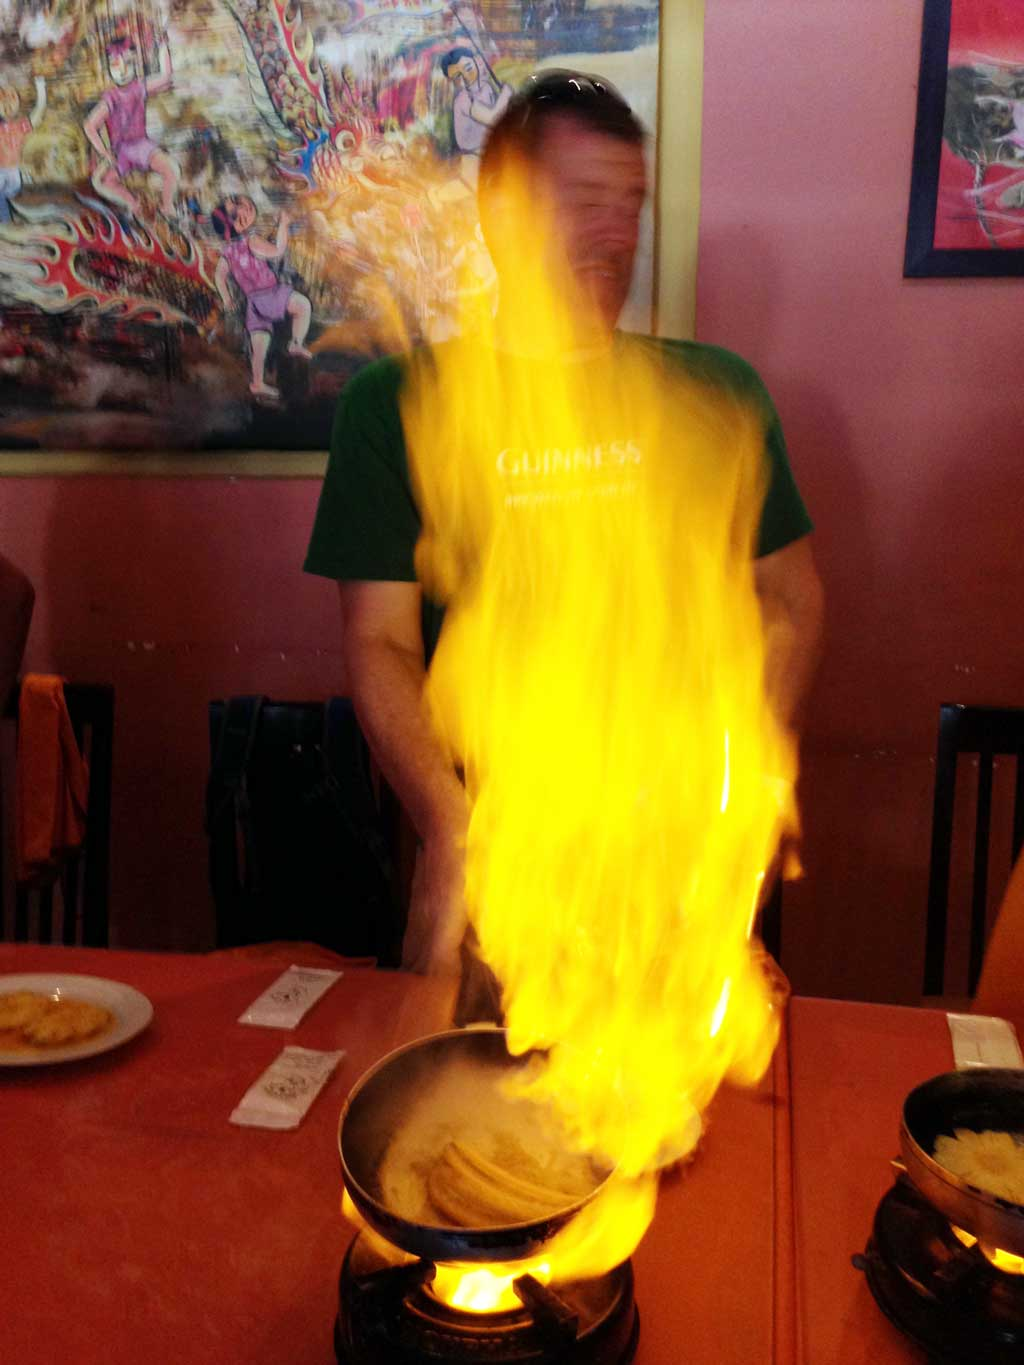 nha trang cooking class: Michael nearly burning the place down